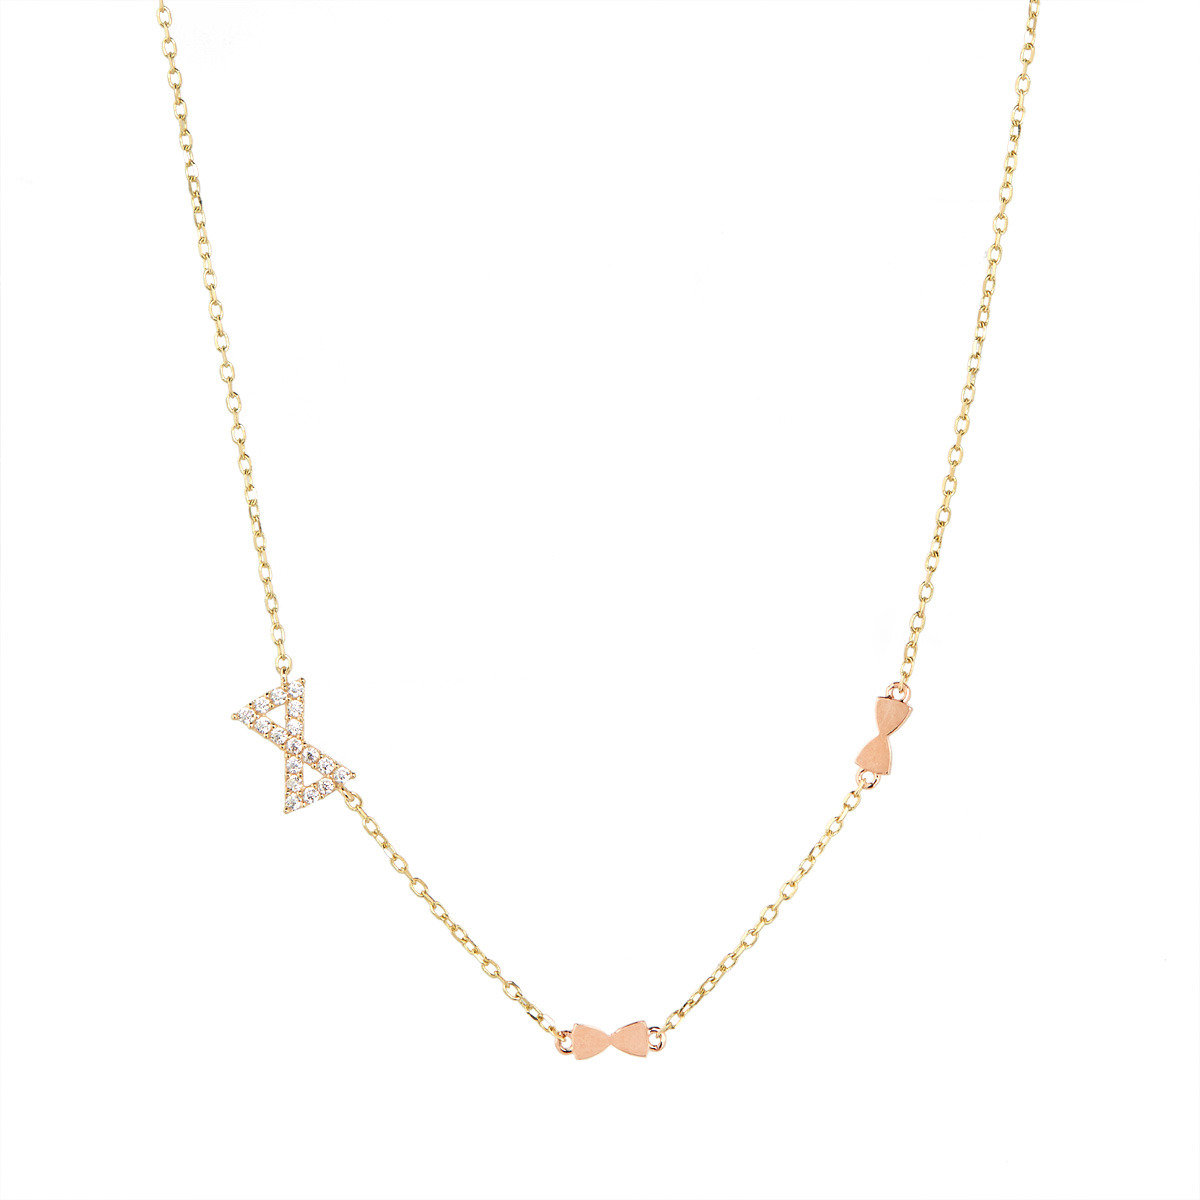 Three-ribboned necklace_FP1237